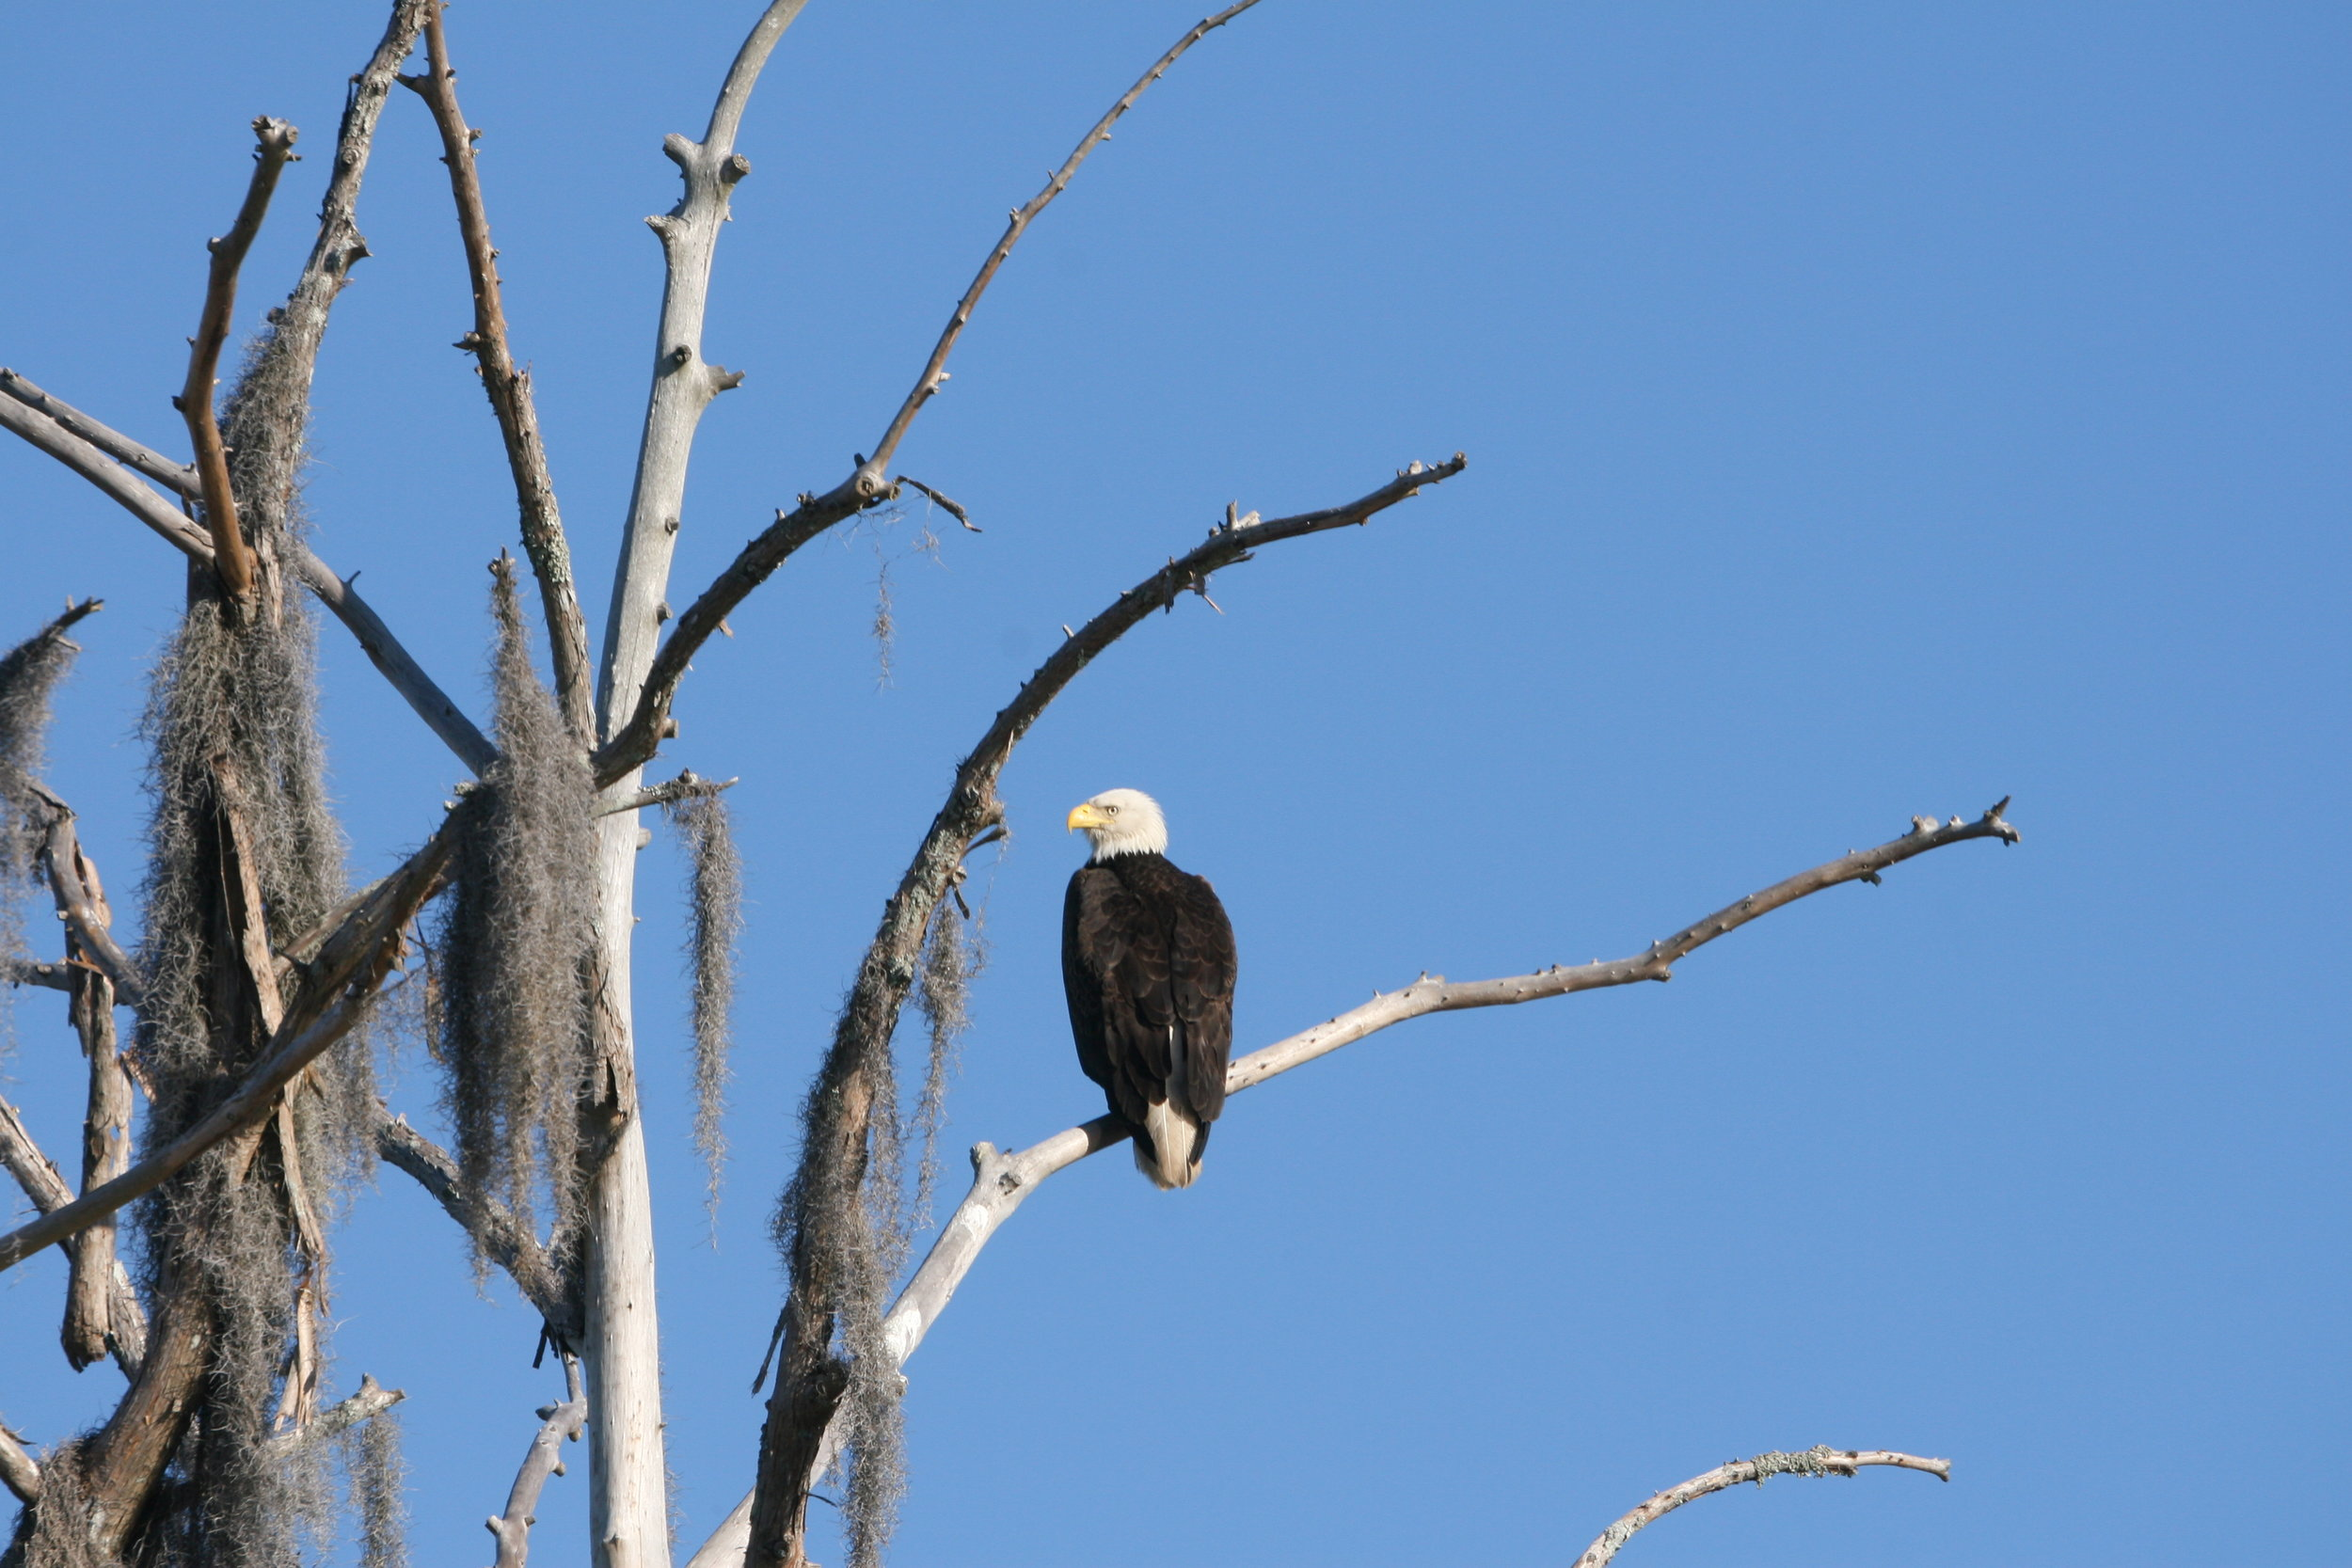 Til death do us part: bald eagles mate for life, but when one member of pair dies, the surviving mate will  partner with a new male or female. (Photo: Liz Duermit)